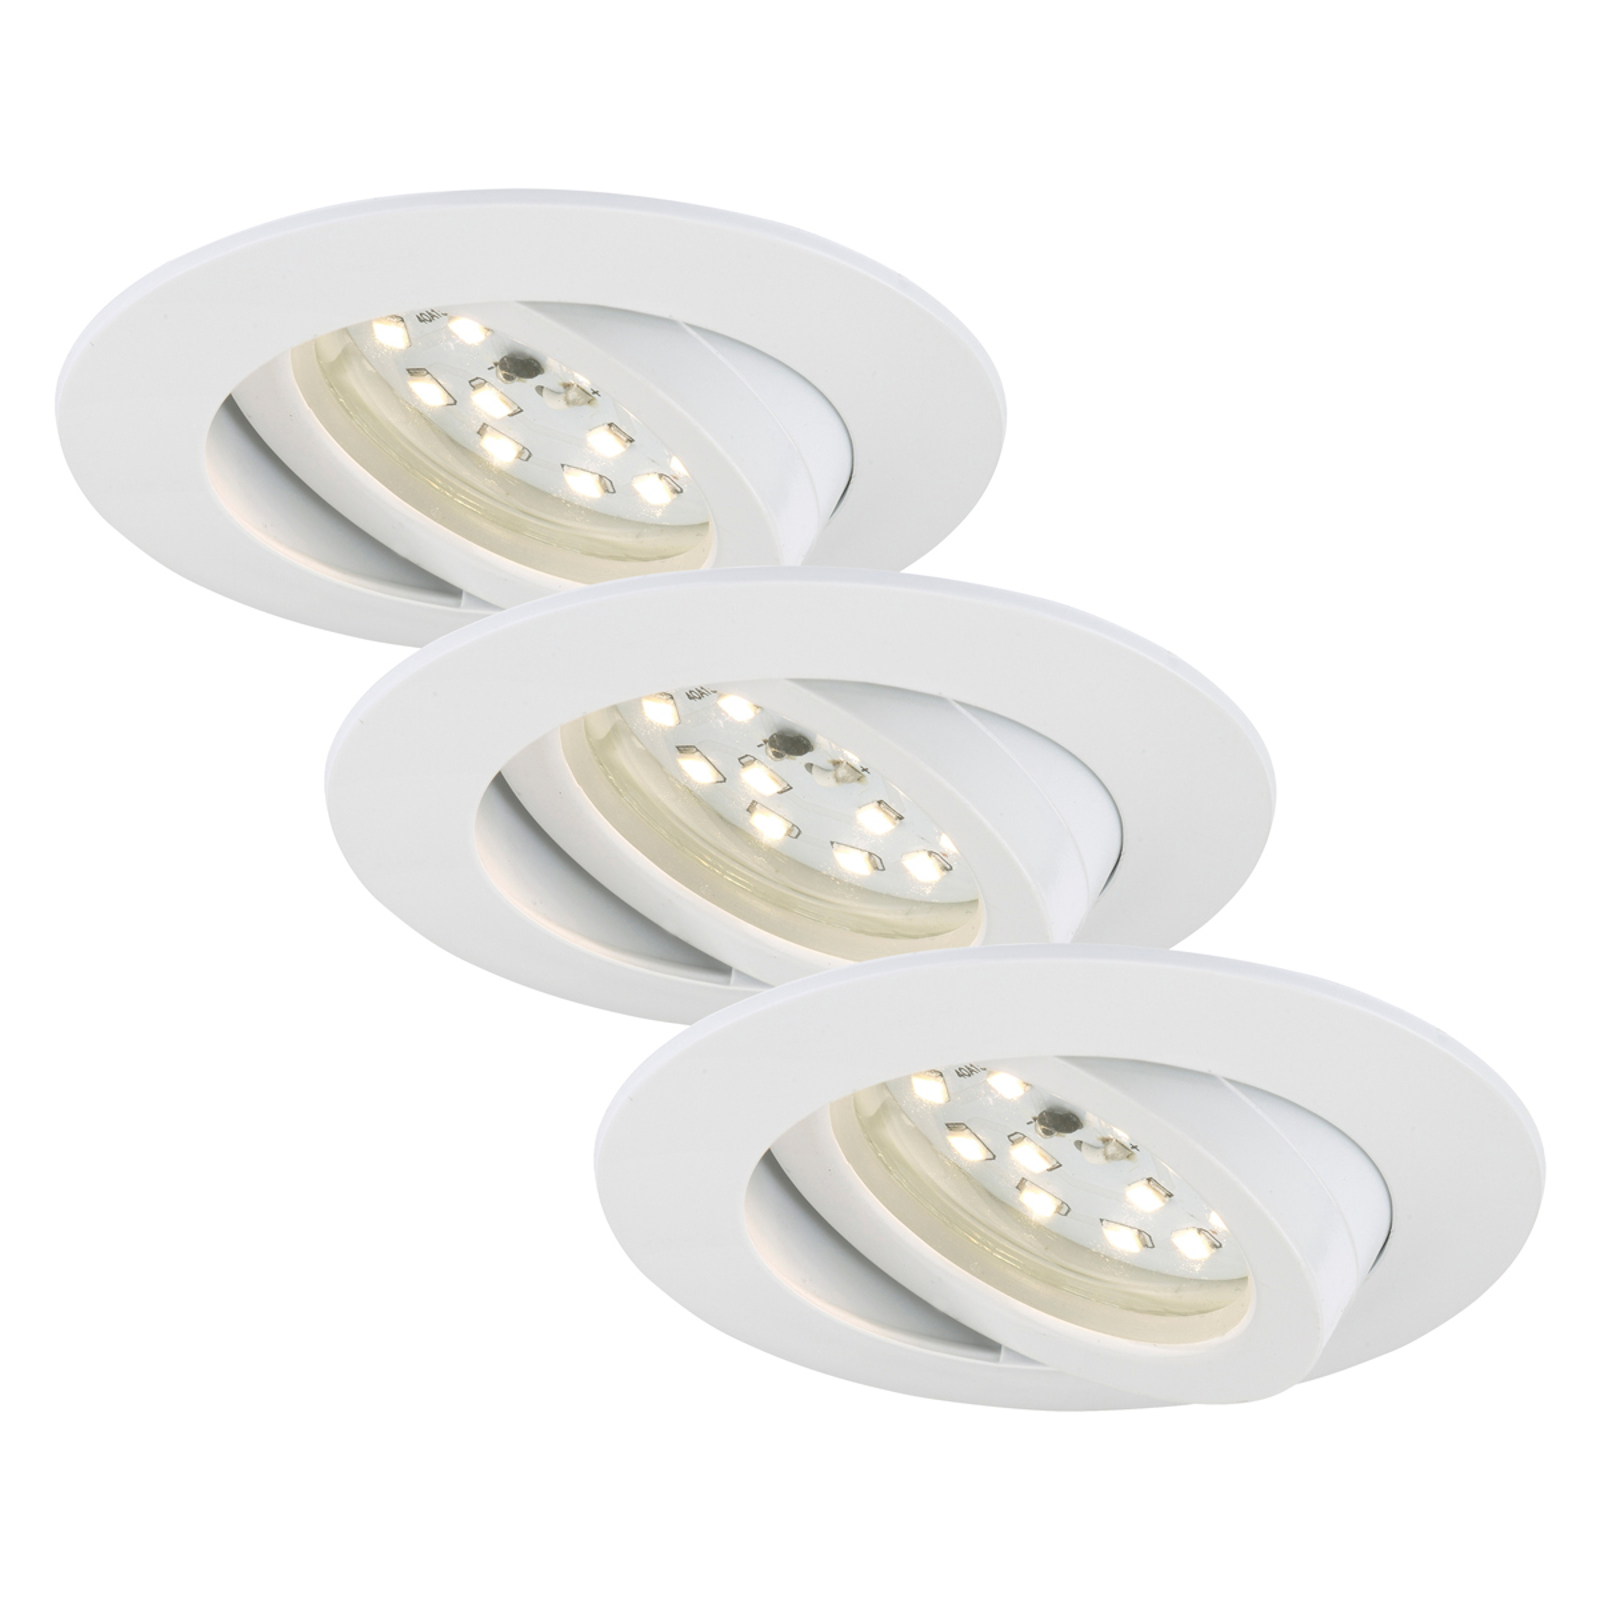 Pivotable LED recessed light Bert, set of three_1510328_1